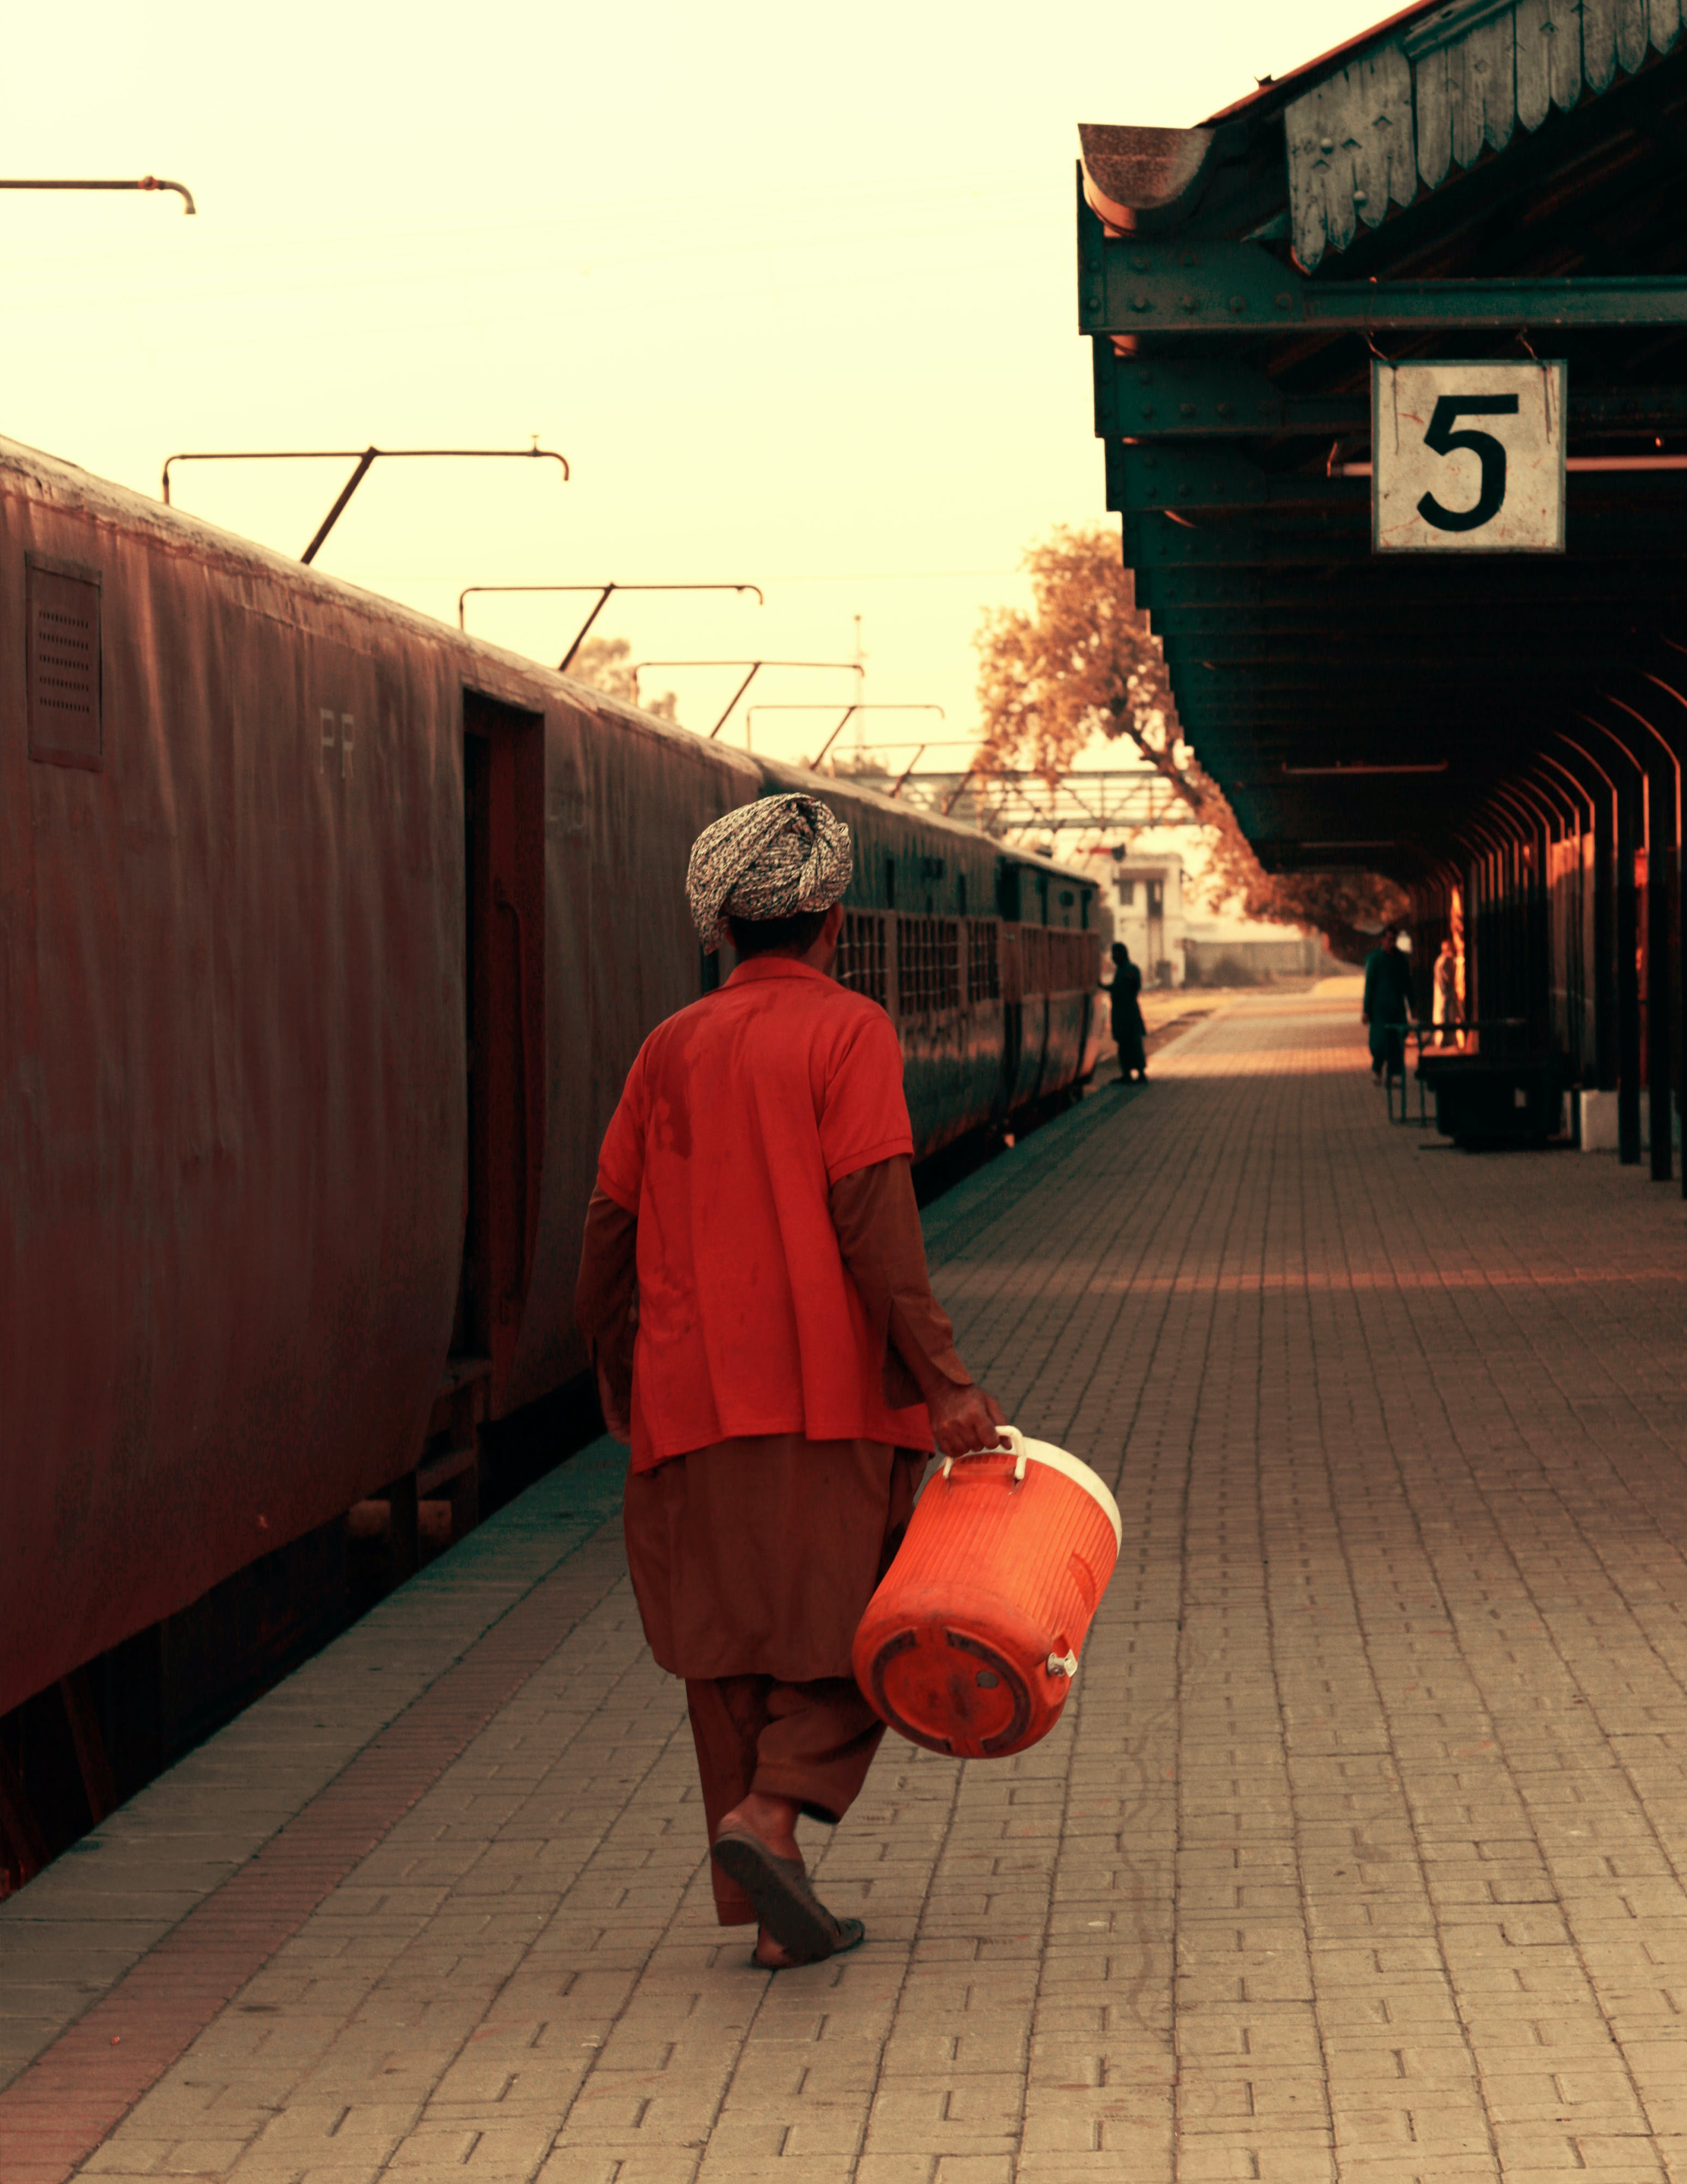 Free stock photo of Asia coolie, coolie, coolie at railway station, coolie man